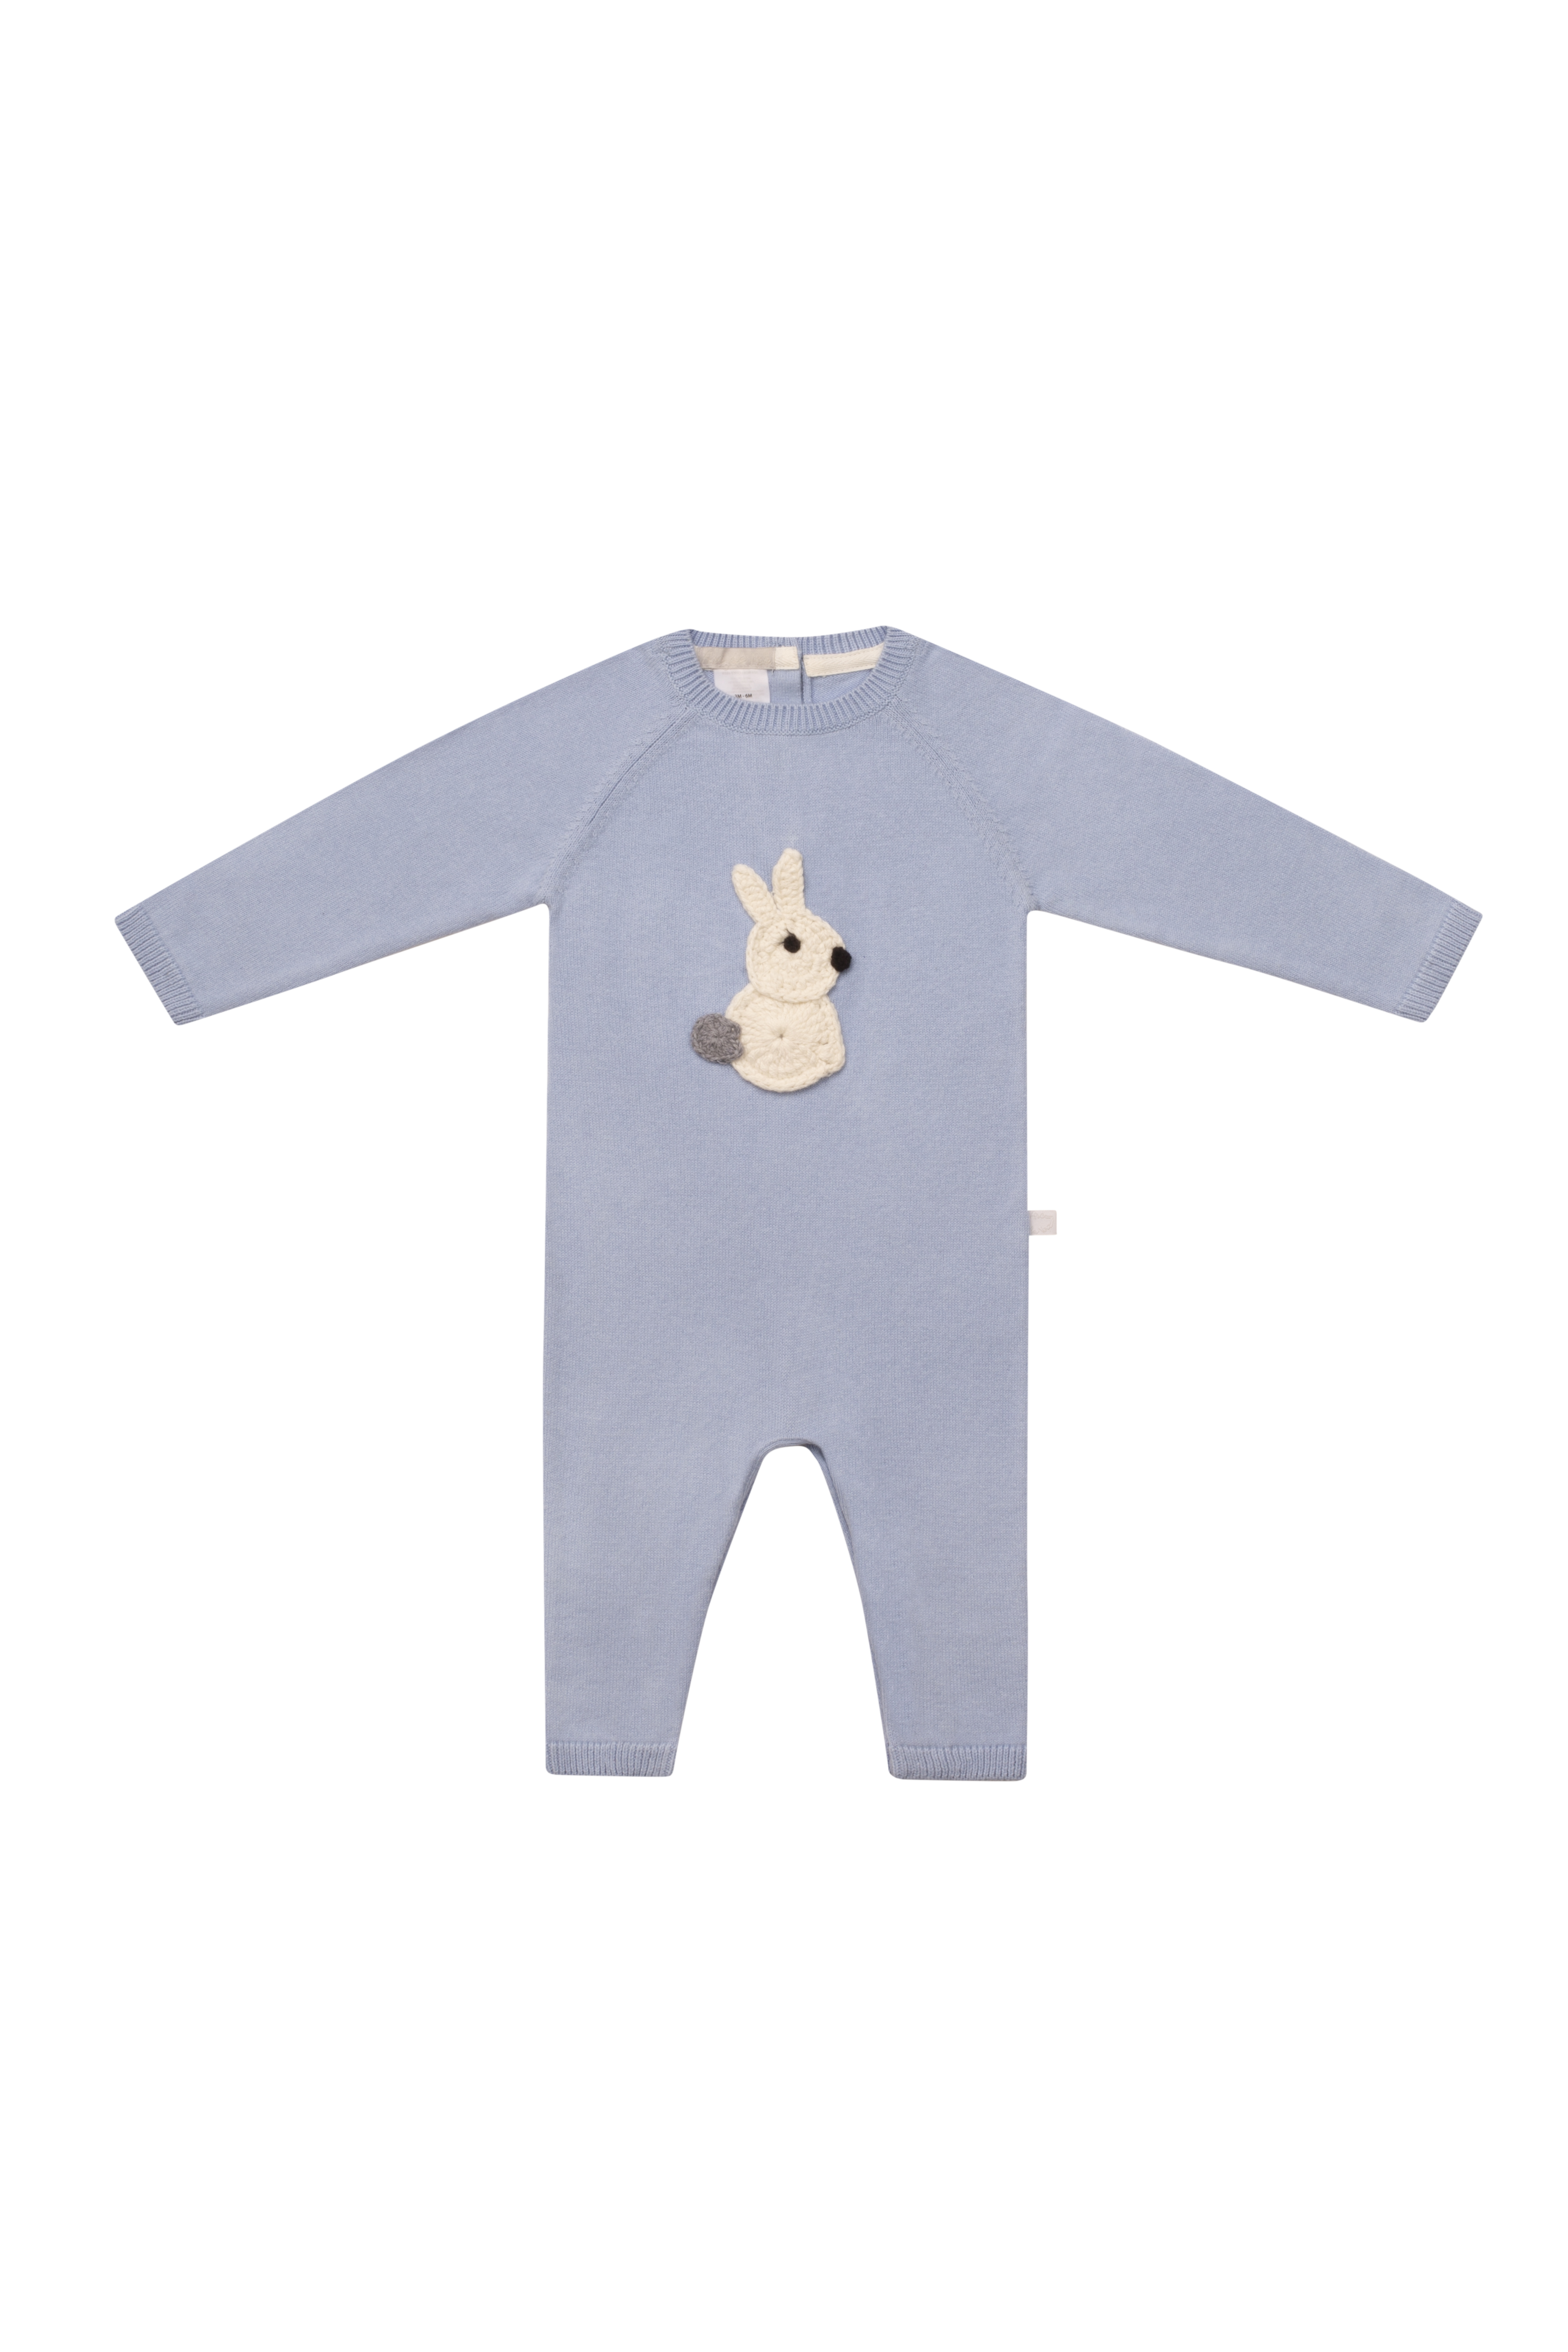 Hunny Bunny Blue Romper by Arc de Noa on curated-crowd.com